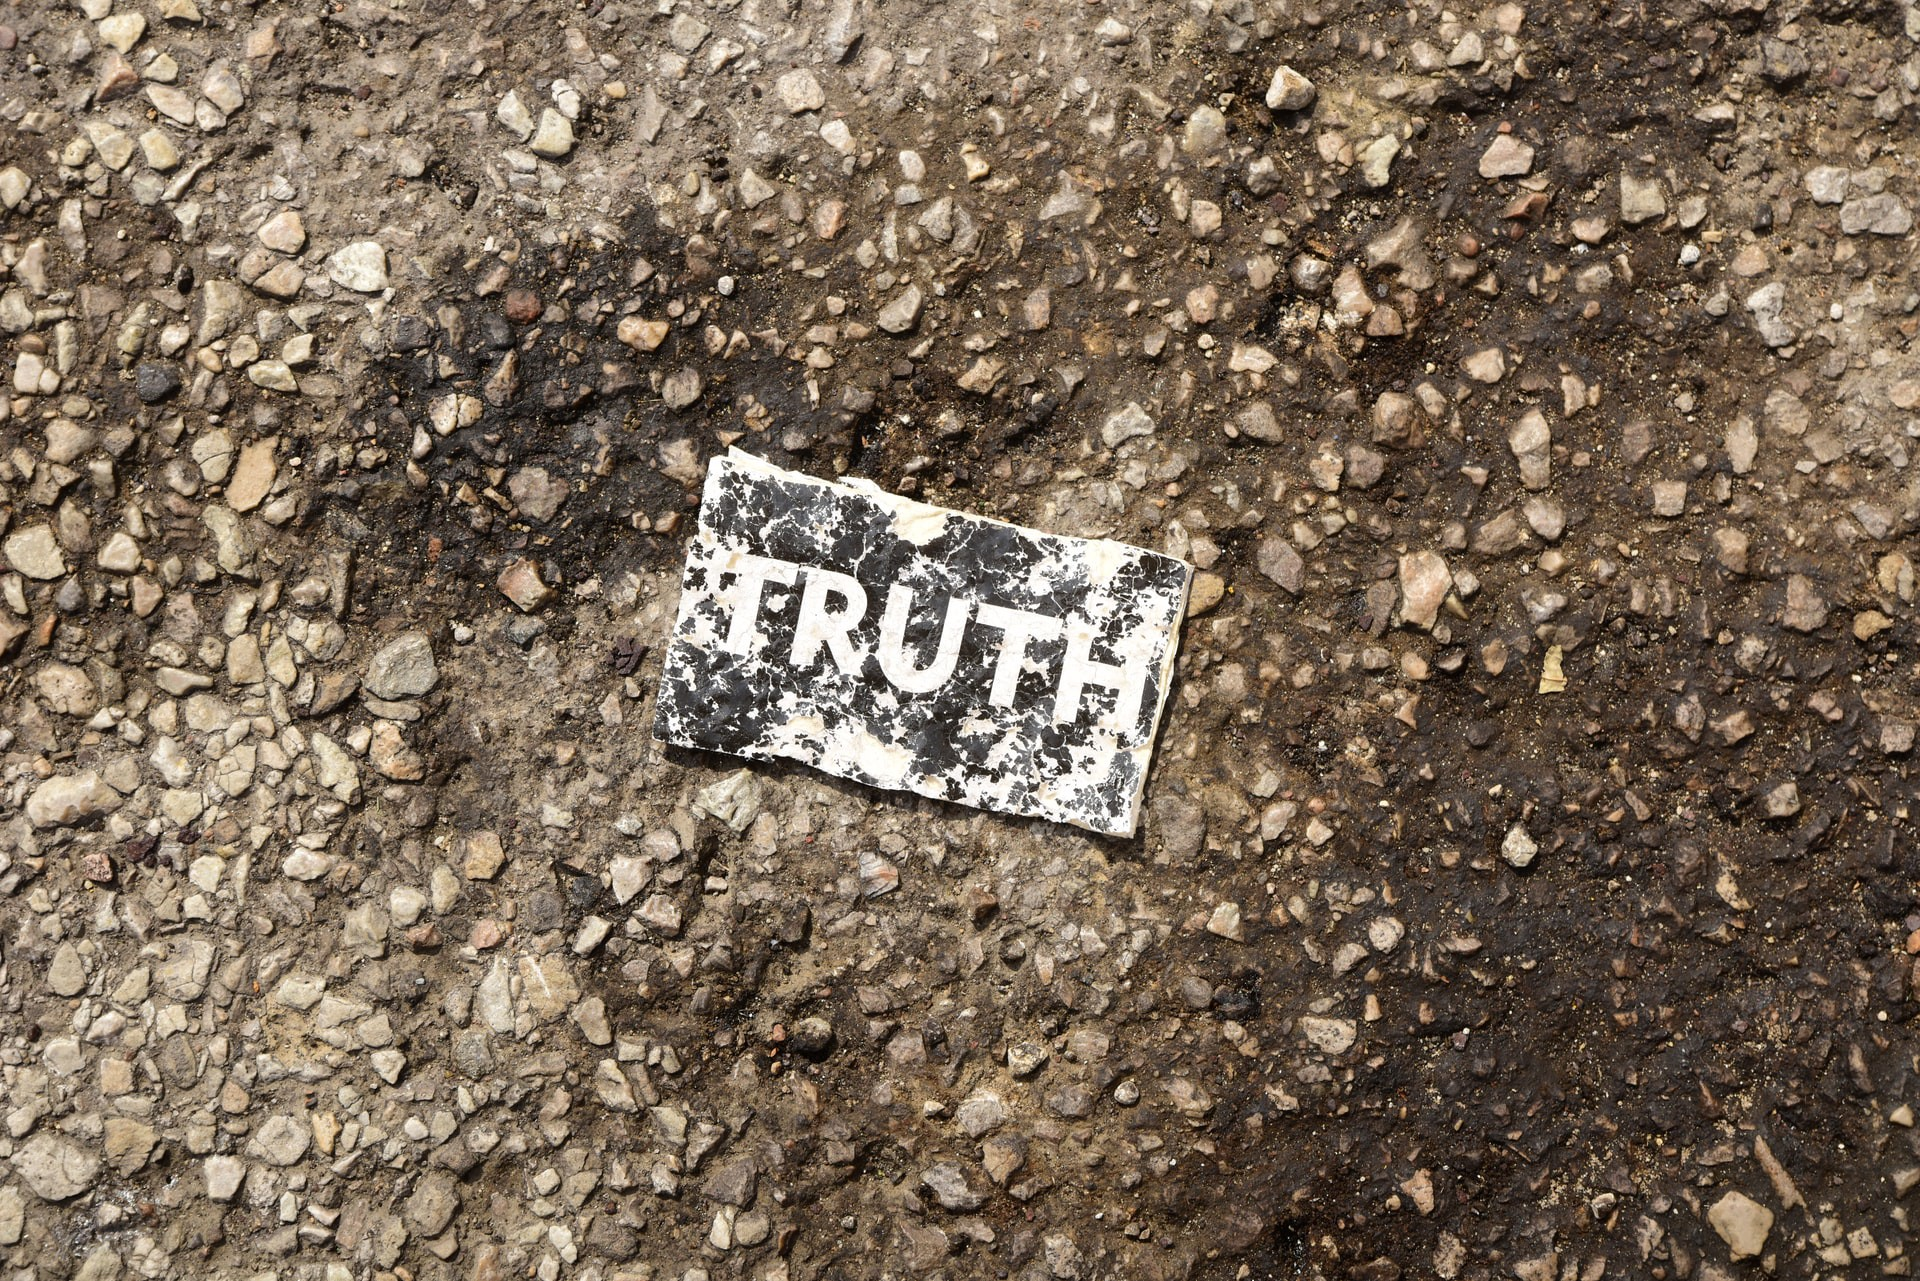 """Truth"" written on a piece of paper laying on the ground."